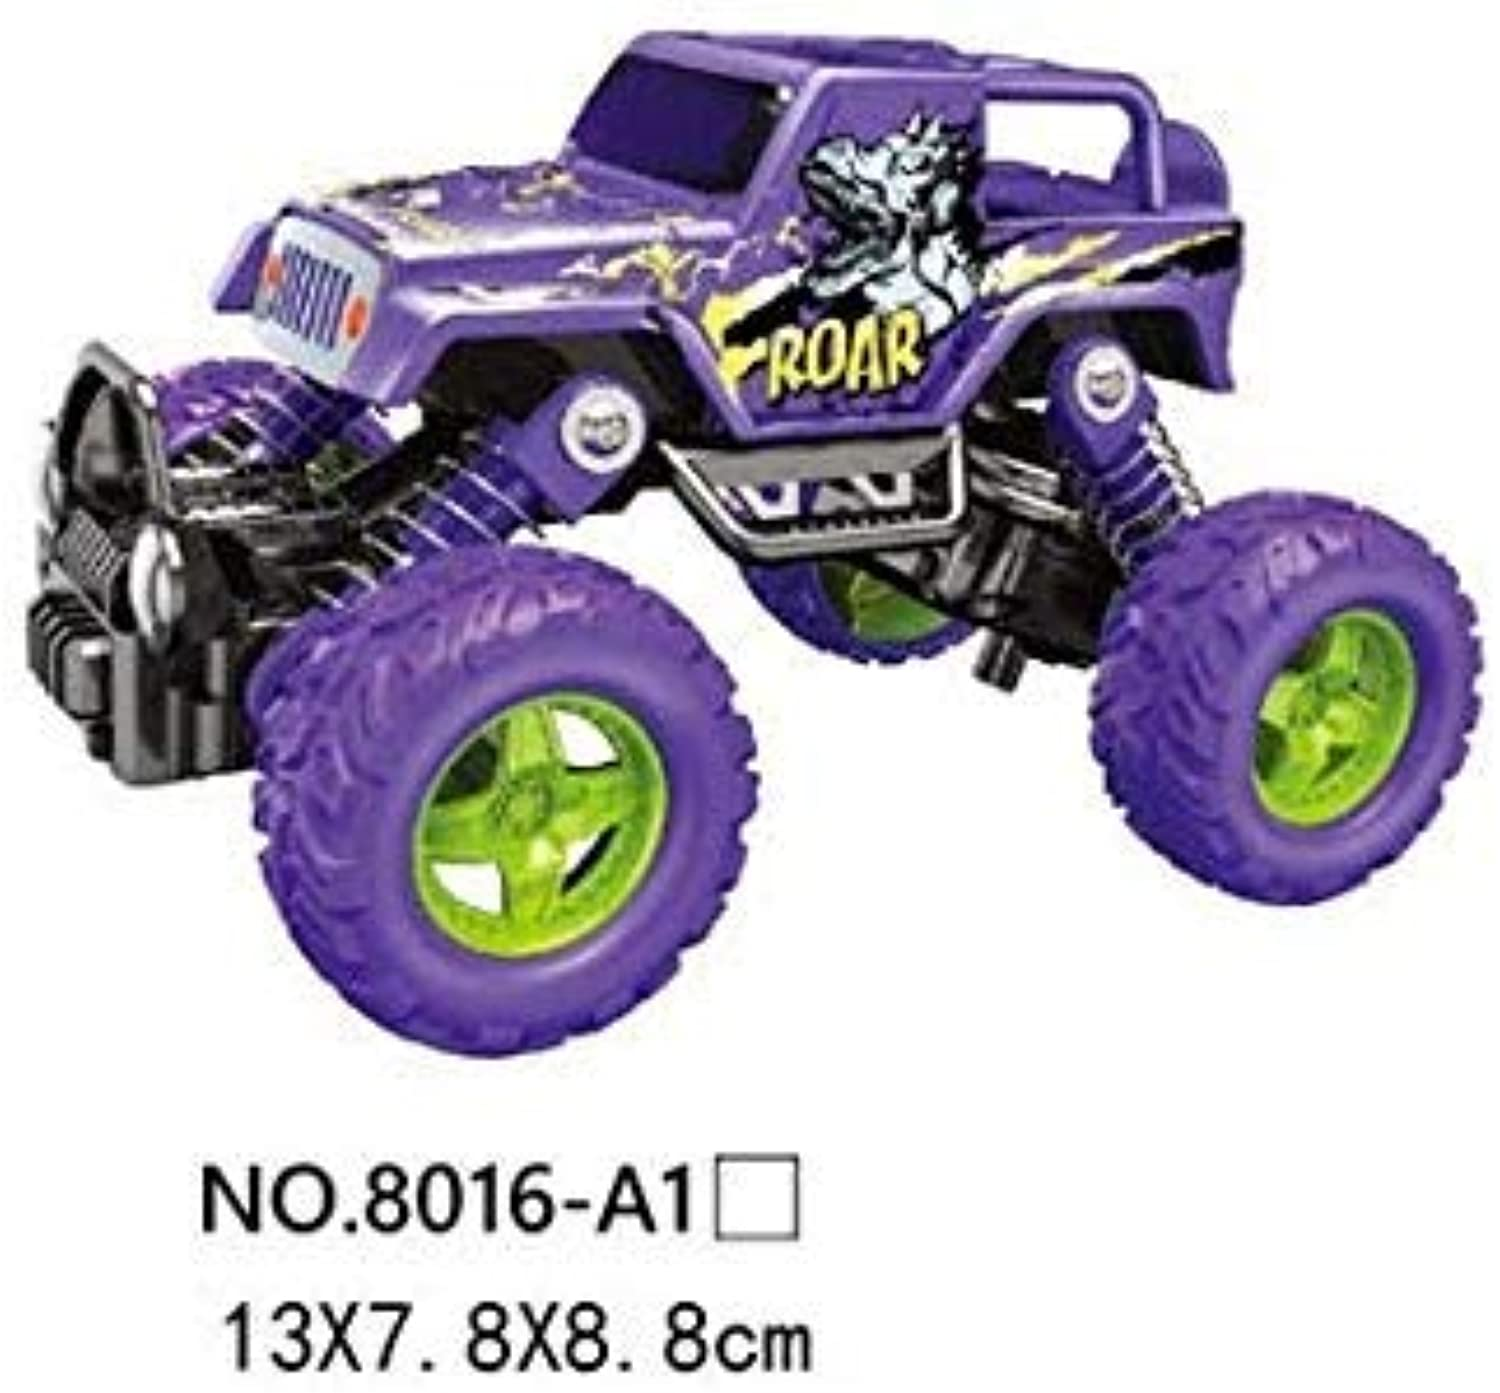 31Styles 1 32 Diecast Metal Alloy Model Toy Car inertial car Gift for Kids Fashion Birthday Gifts Toy Dump Truck 1